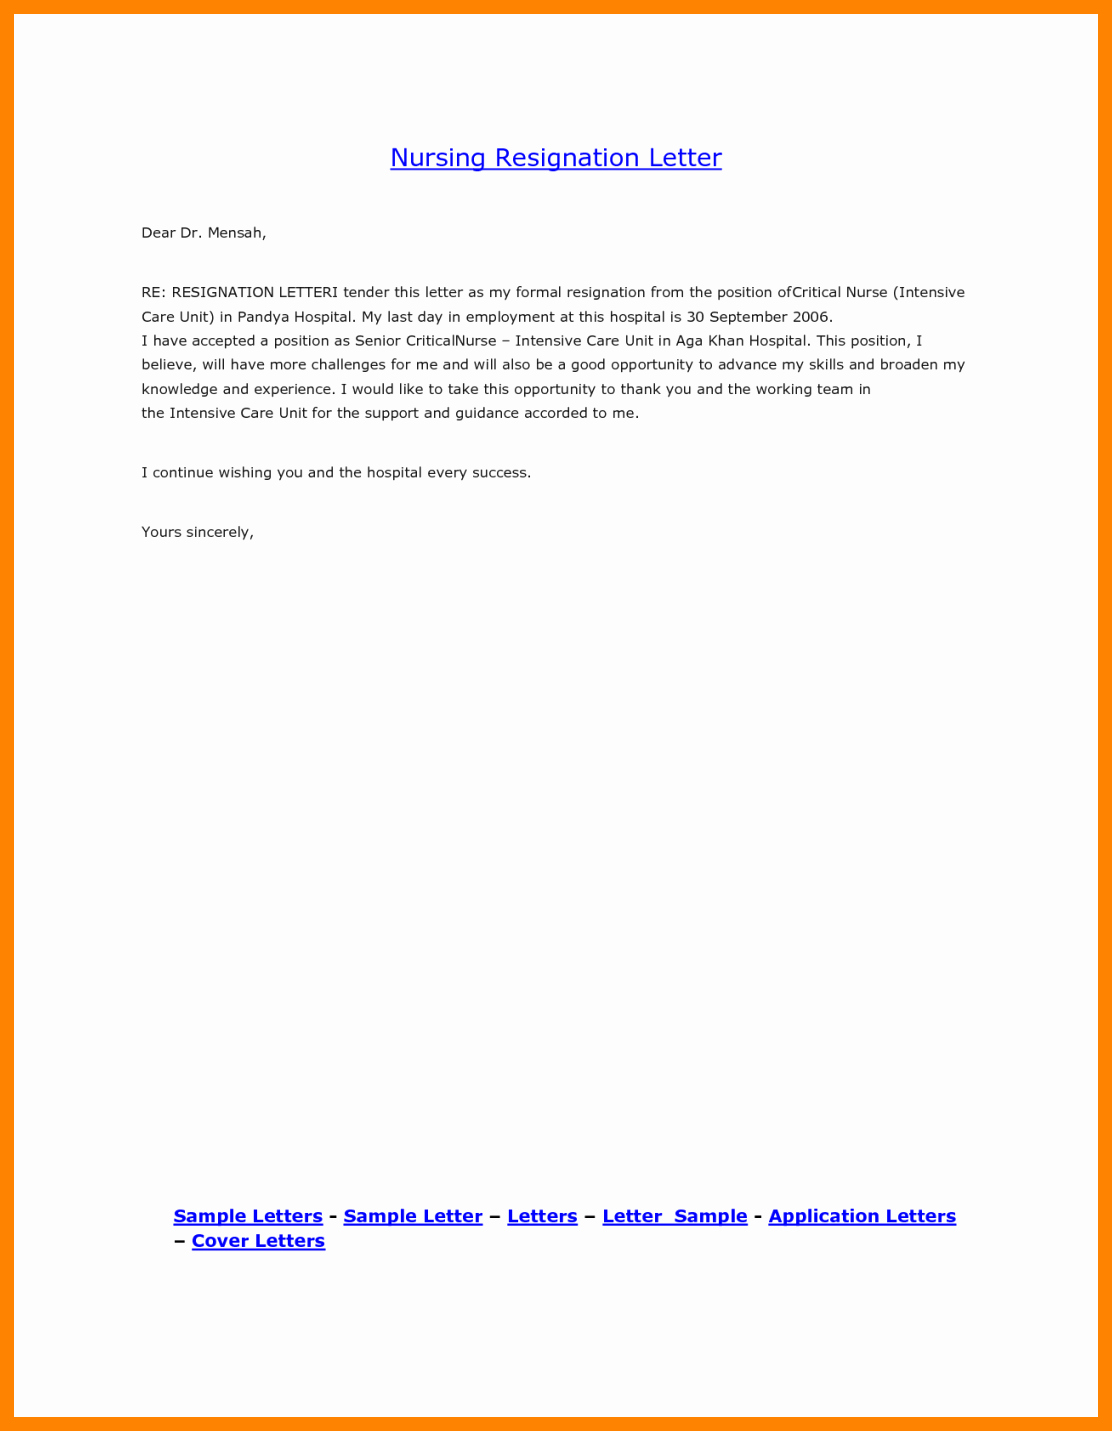 Nursing Resignation Letter Template Beautiful 8 Registered Nurse Resignation Letter Sample